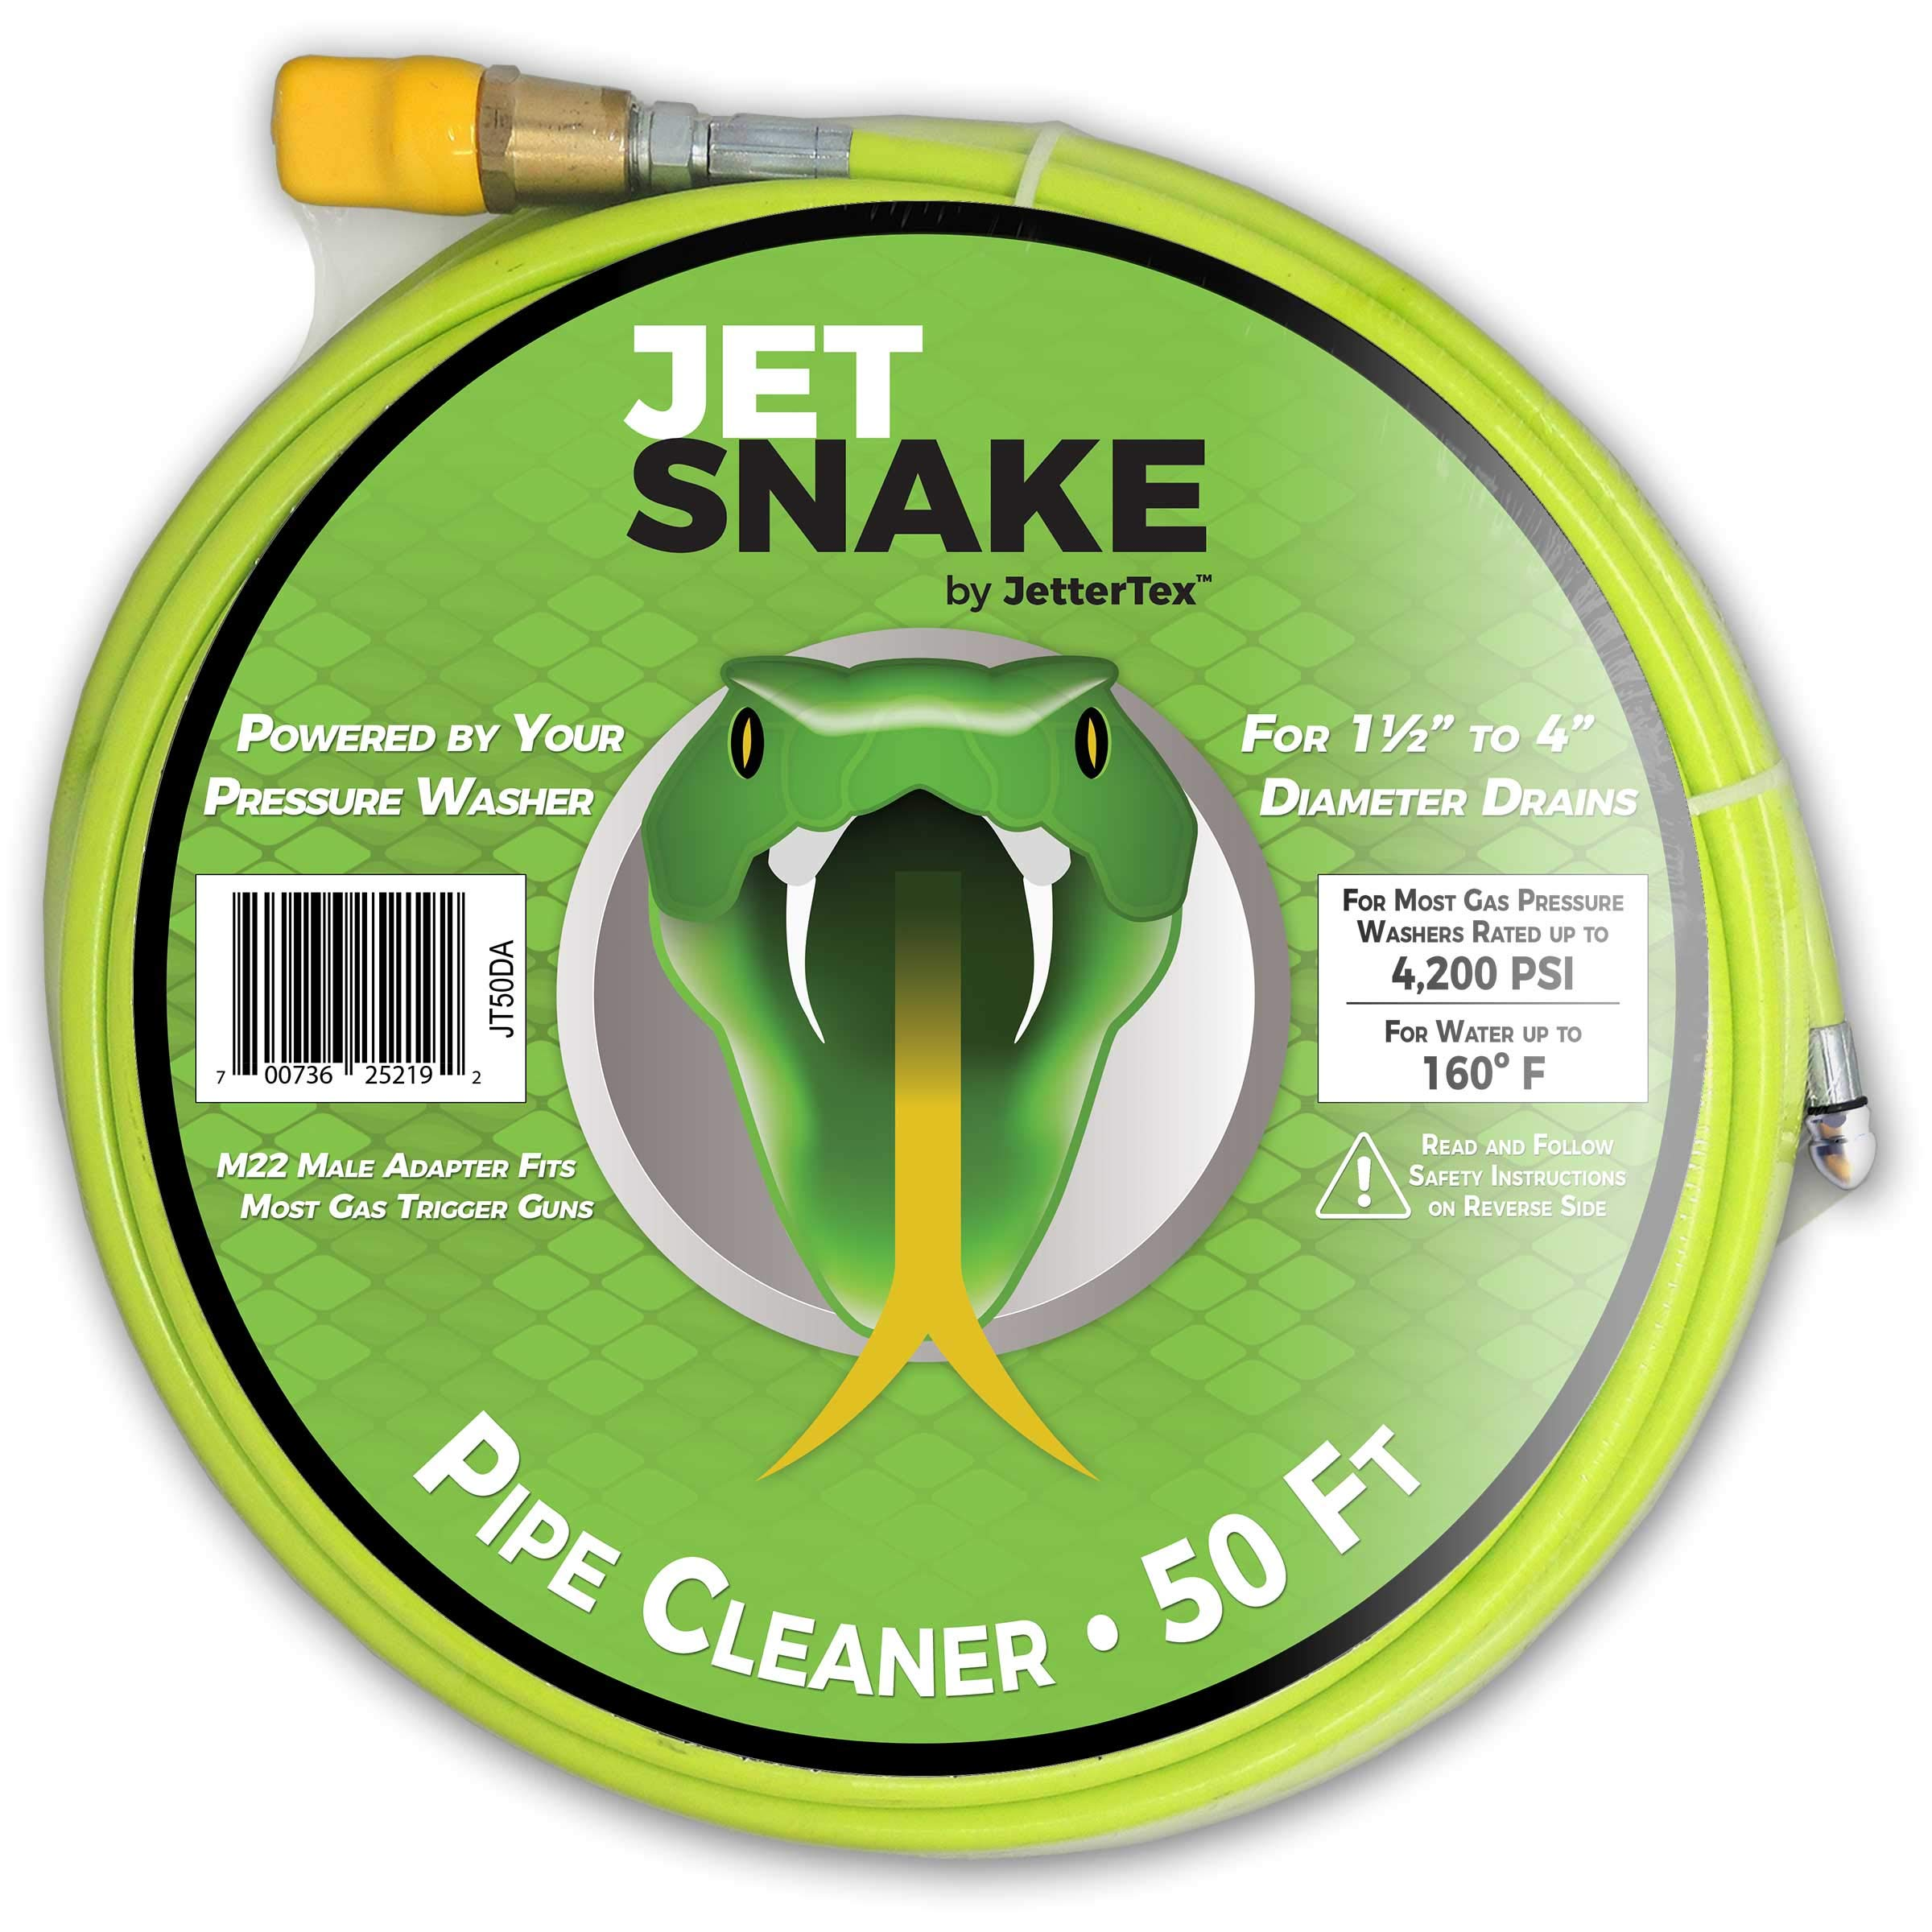 JetSnake Sewer Jetter - 50 FT Drain Cleaner for Your Gas Pressure Washer by JetSnake